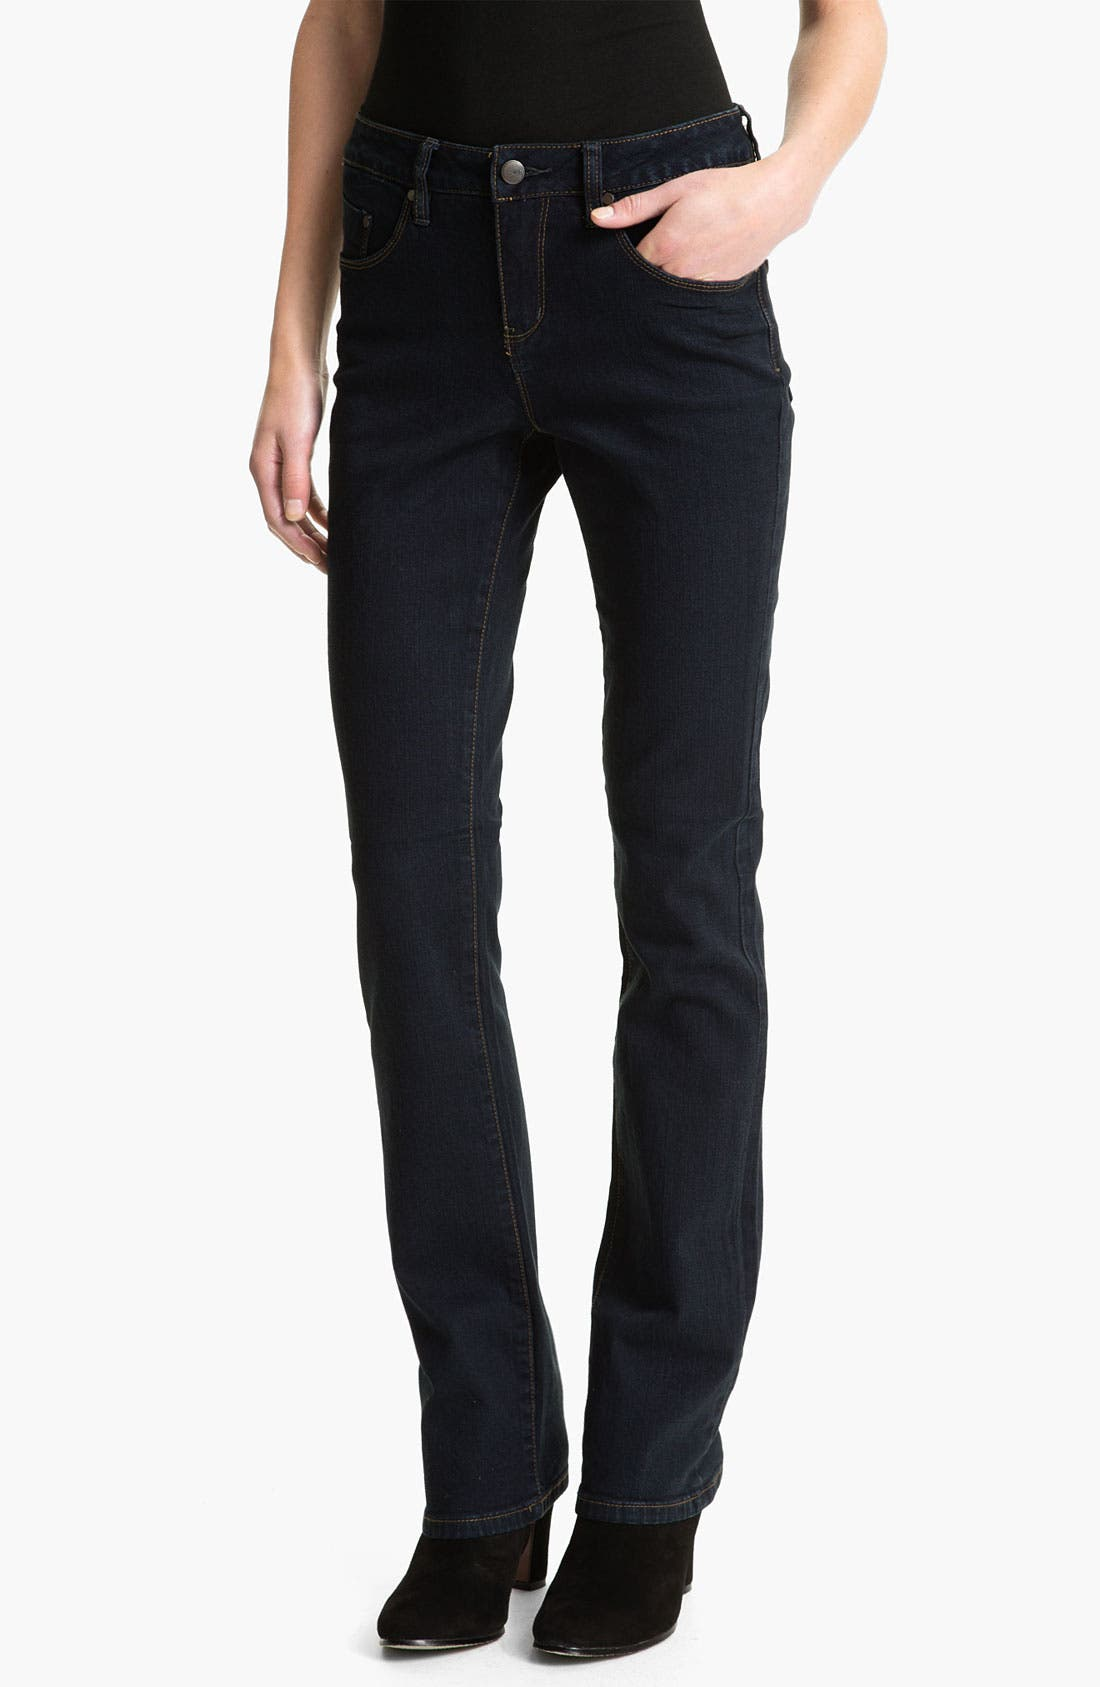 Alternate Image 1 Selected - Jag Jeans 'Foster' Narrow Bootcut Jeans (Petite)